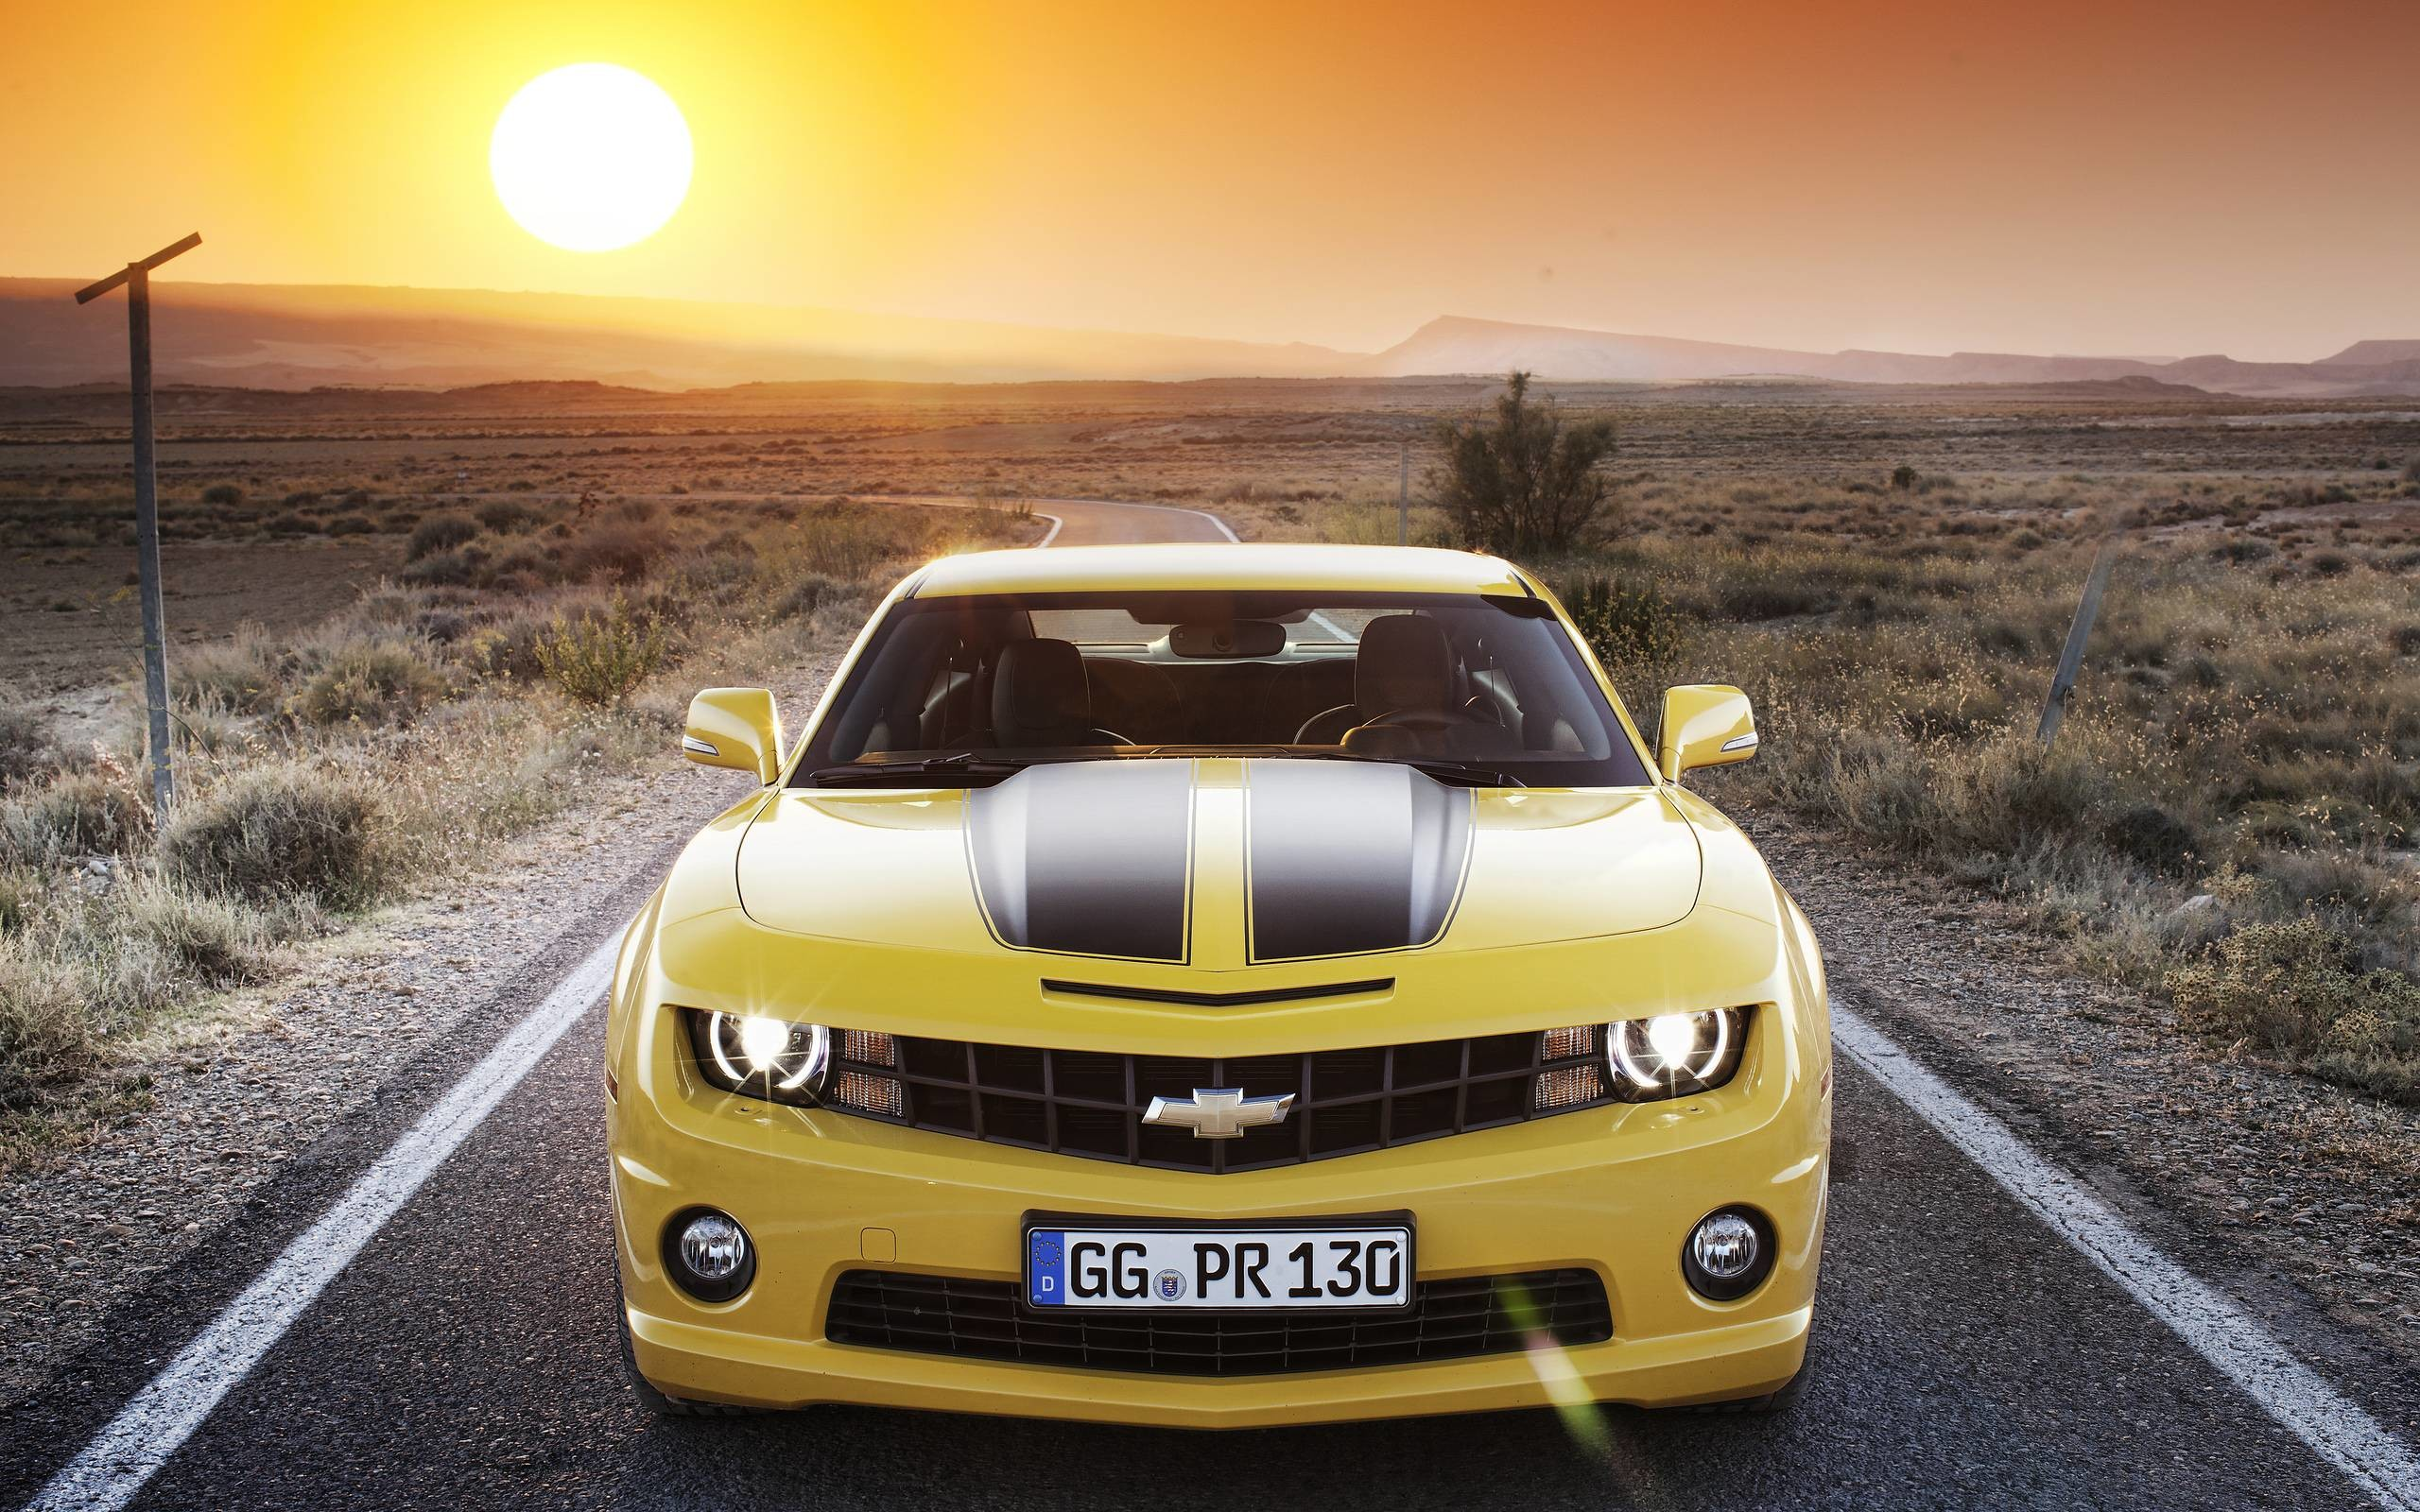 2560x1600 Chevrolet Camaro Wallpaper Yellow 2652 Full HD Wallpaper Desktop .